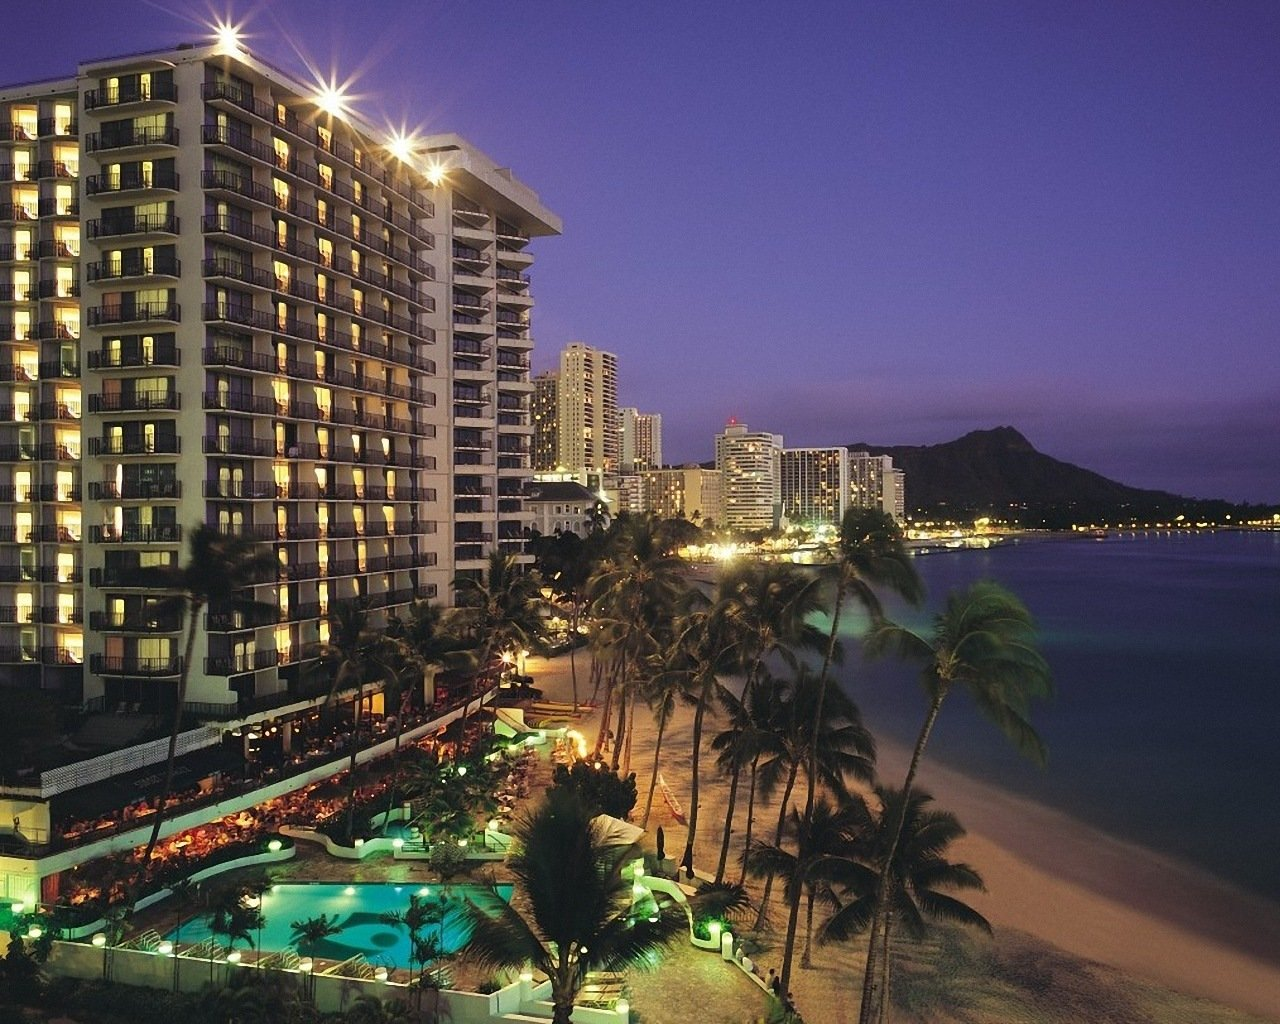 Download Waikiki Wallpaper [1280x1024] 68 Waikiki Beach 1280x1024